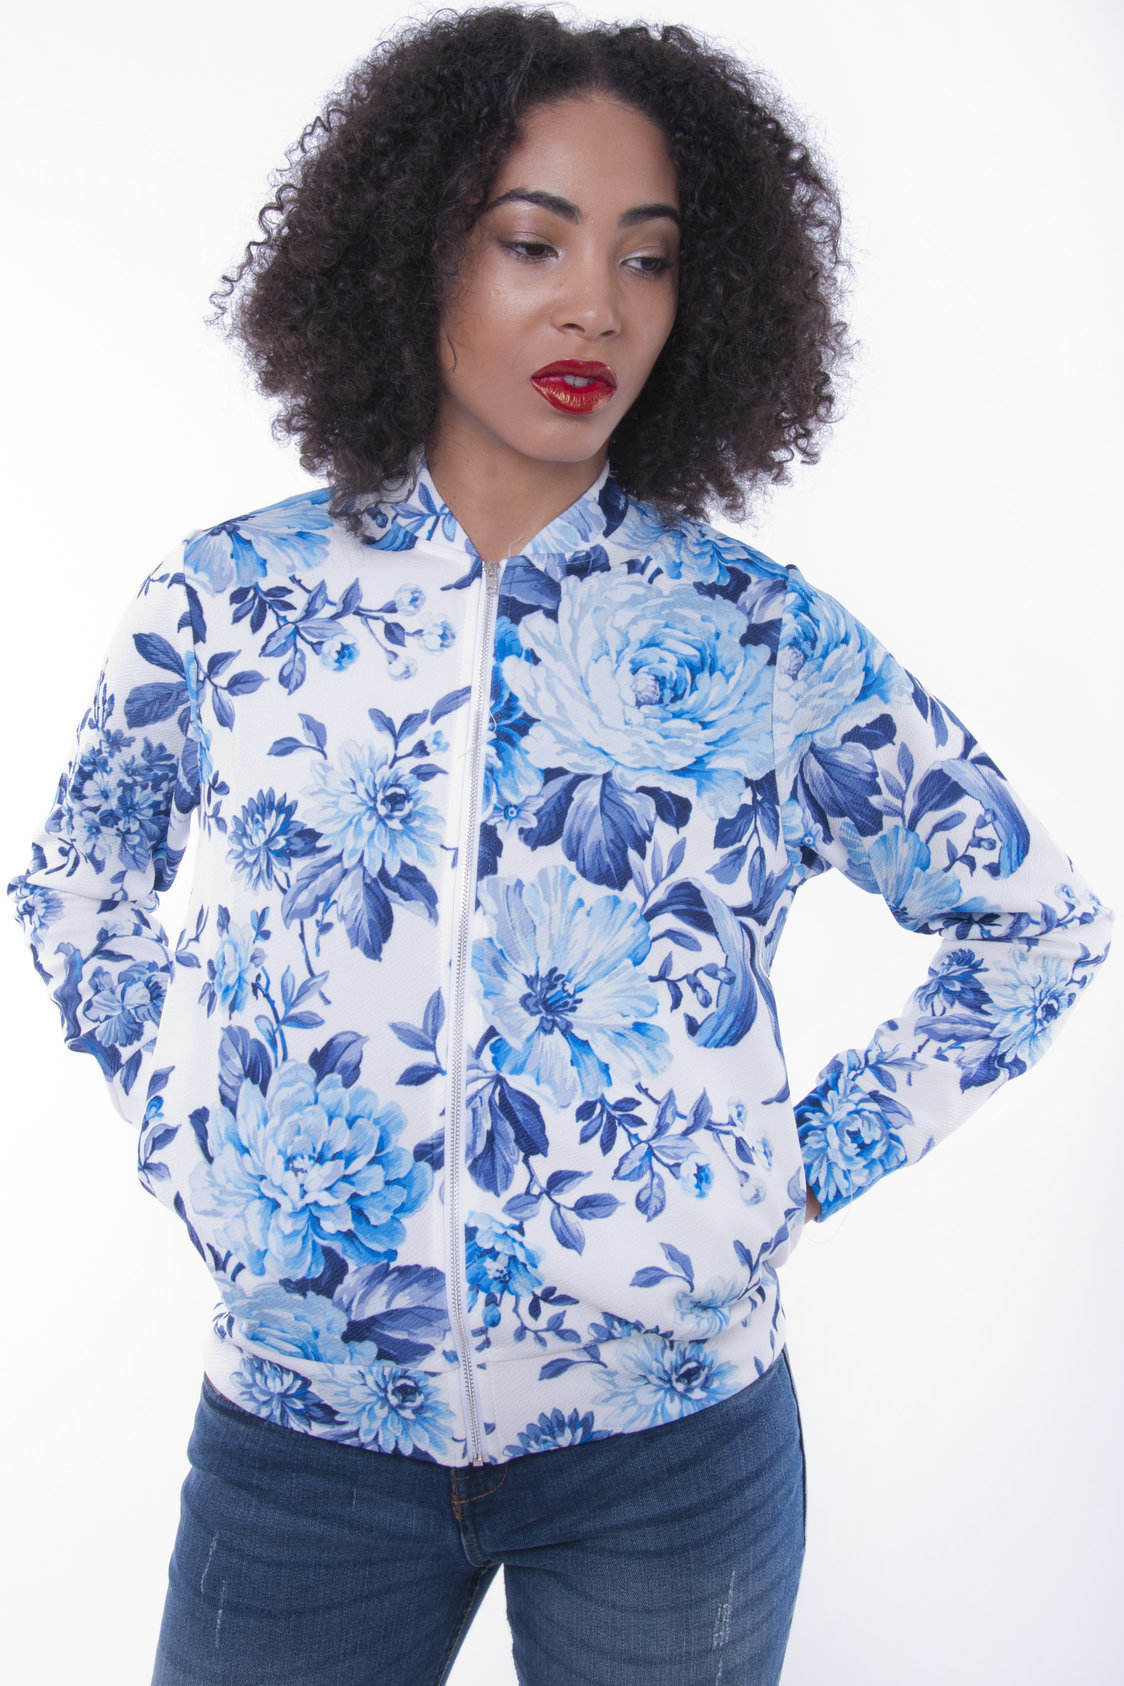 Stylish Floral Print Bomber Jacket Stylish Jackets